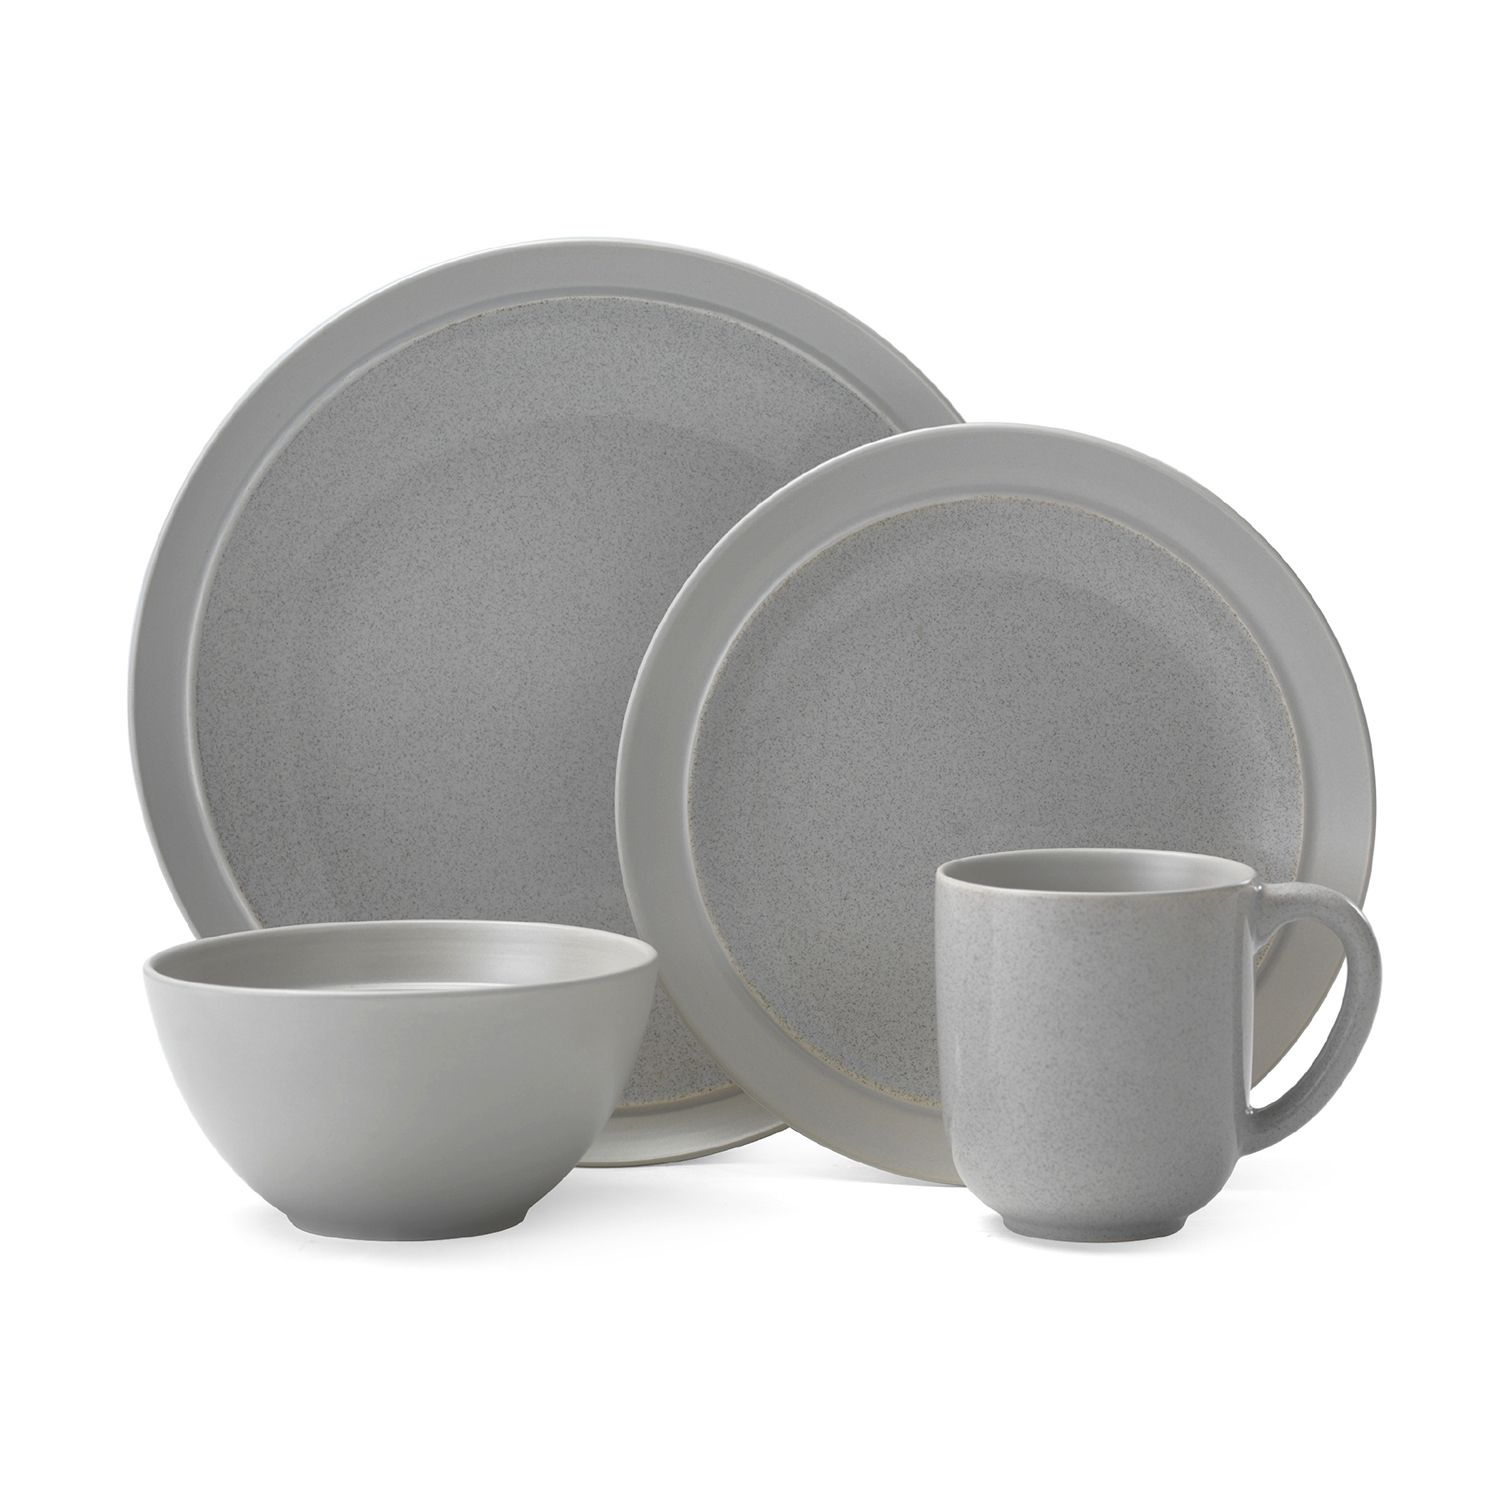 sc 1 st  Kohlu0027s & Gourmet Basics Jocelyn Gray Speckle 16-pc. Dinnerware Set